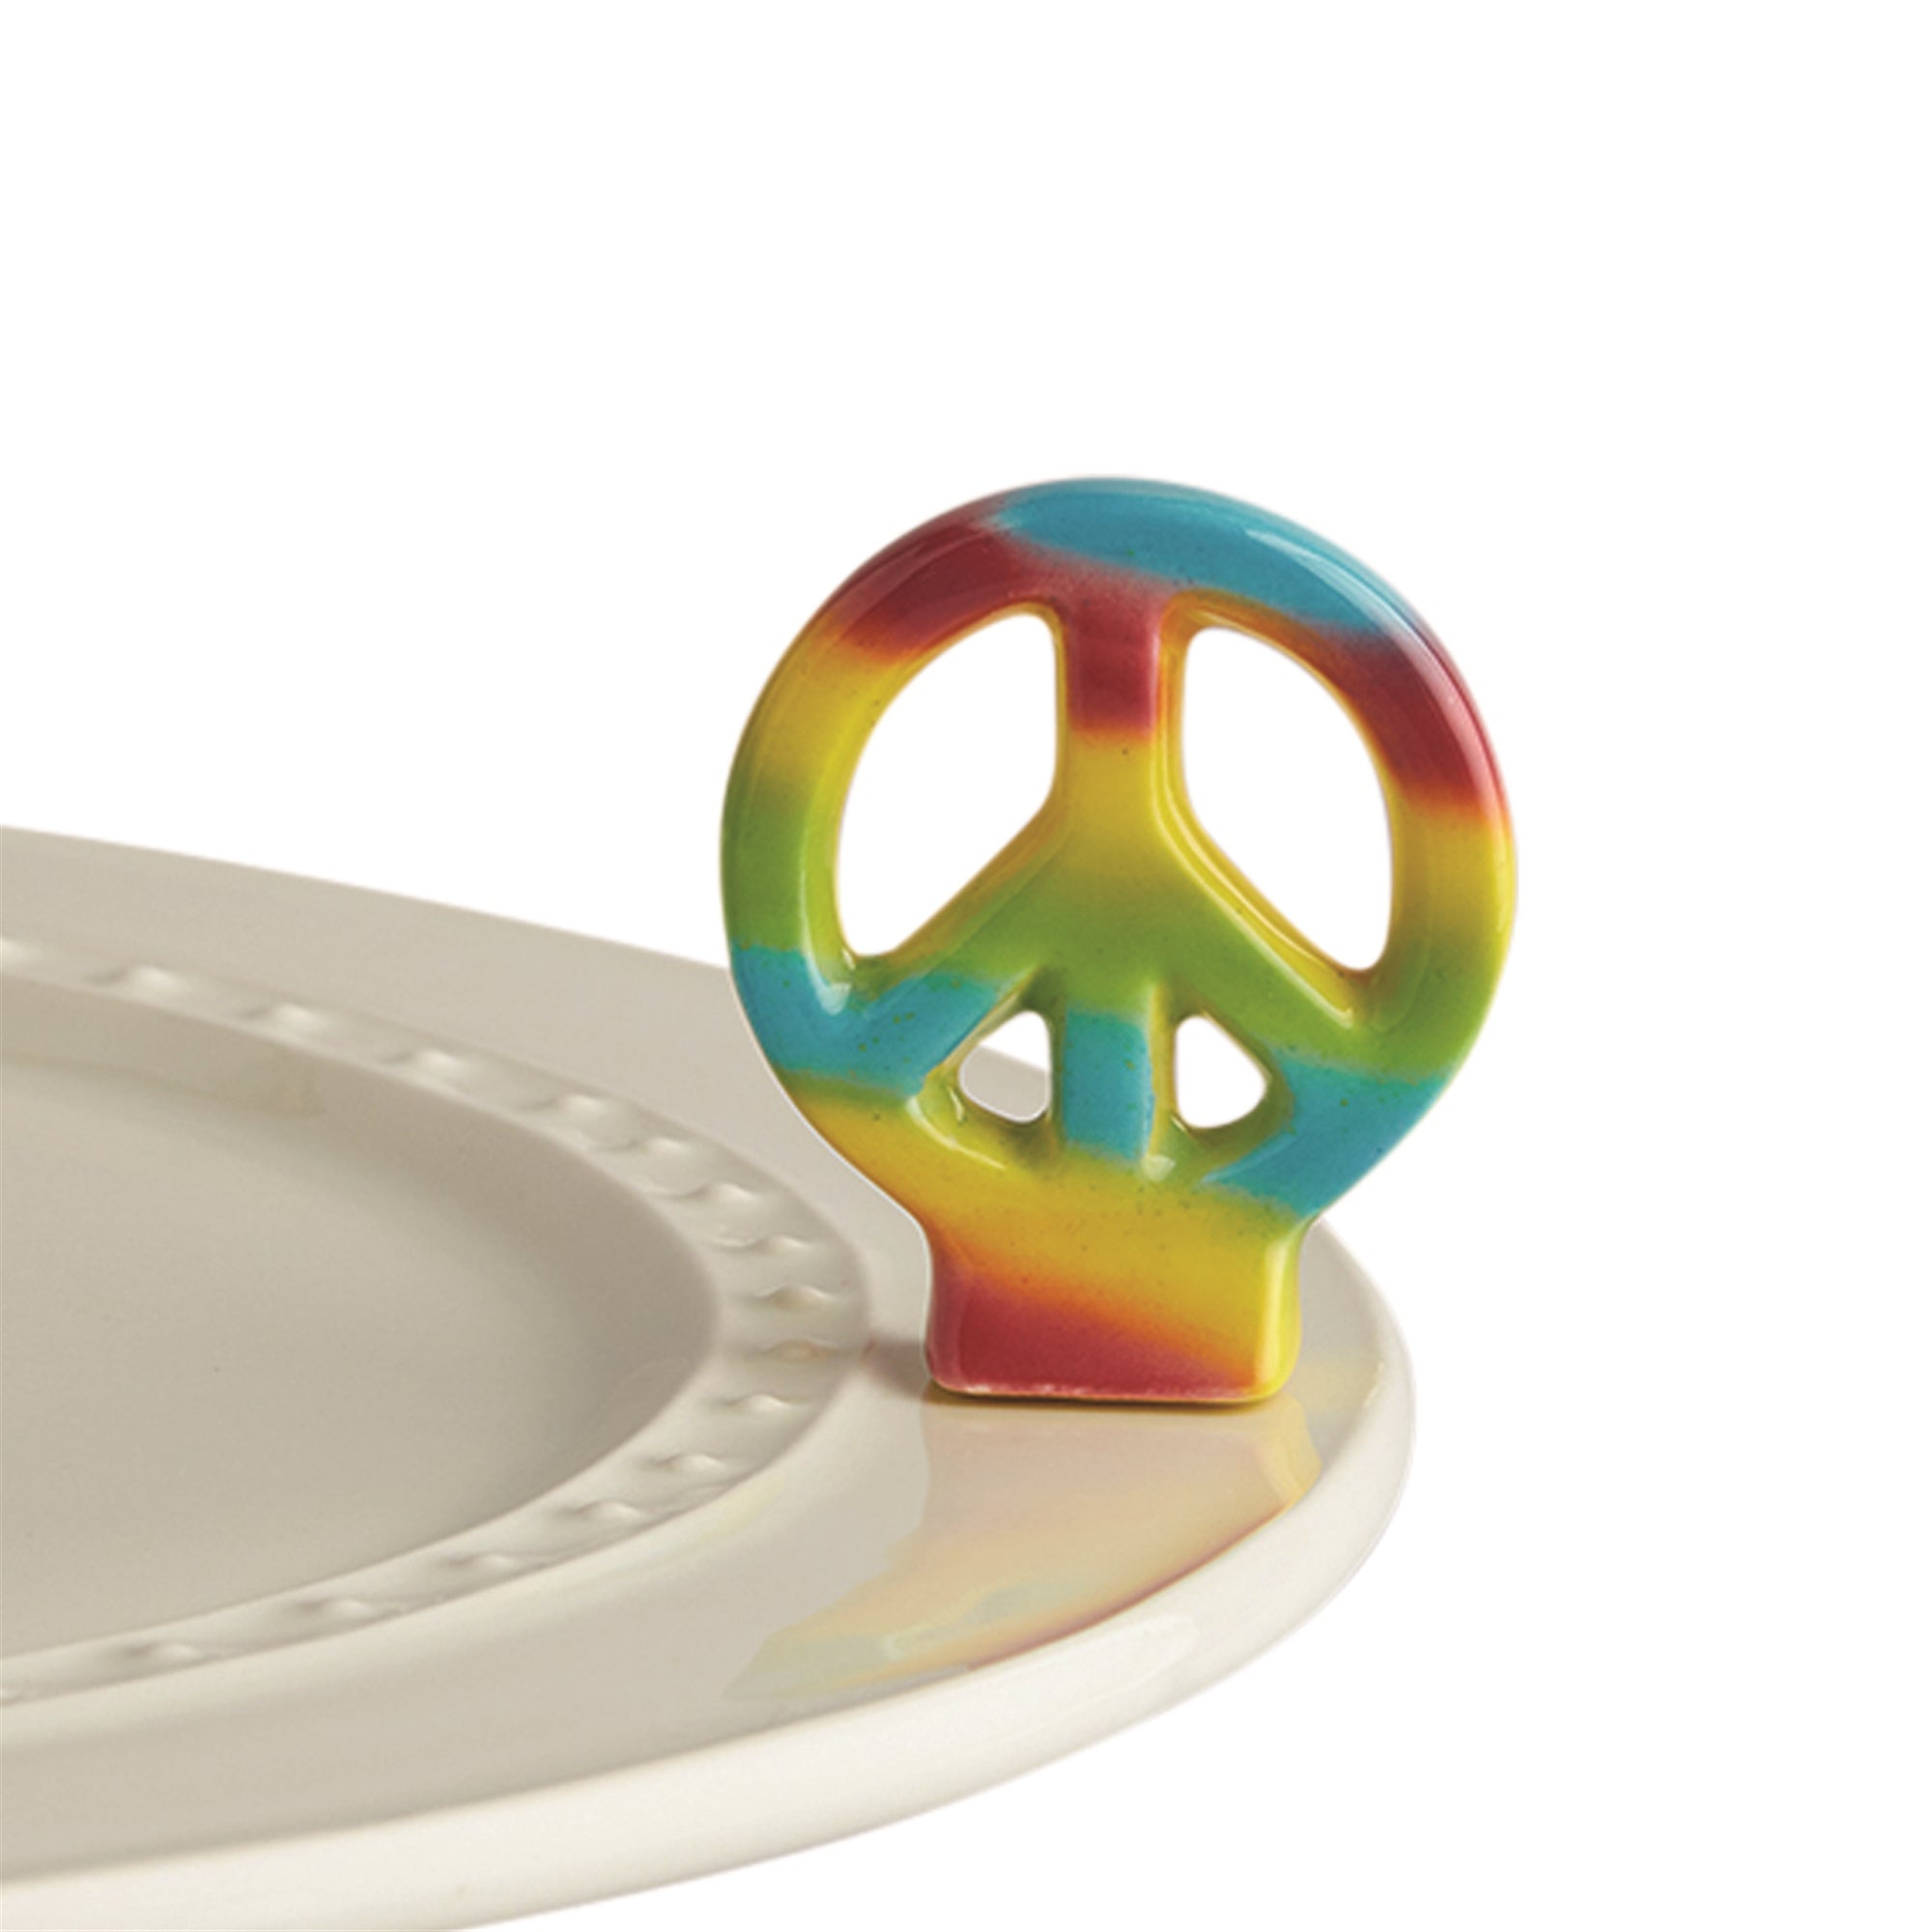 Peace out is a psychedelic colored peace sign mini from Nora Fleming